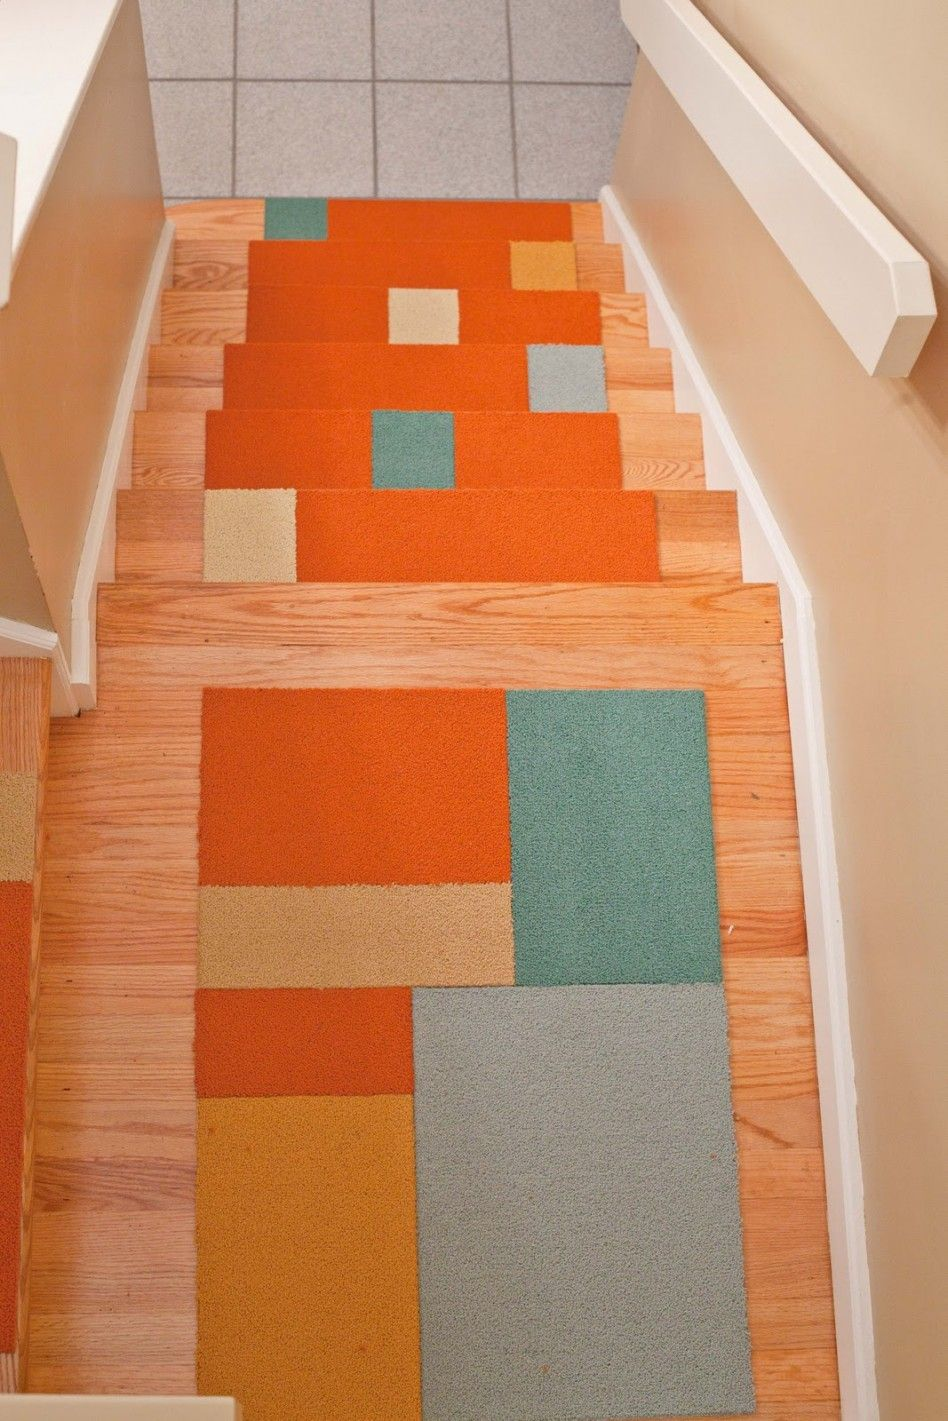 Design Flor Tiles flor tiles on stairs inspiration for calvert lane pinterest stairs